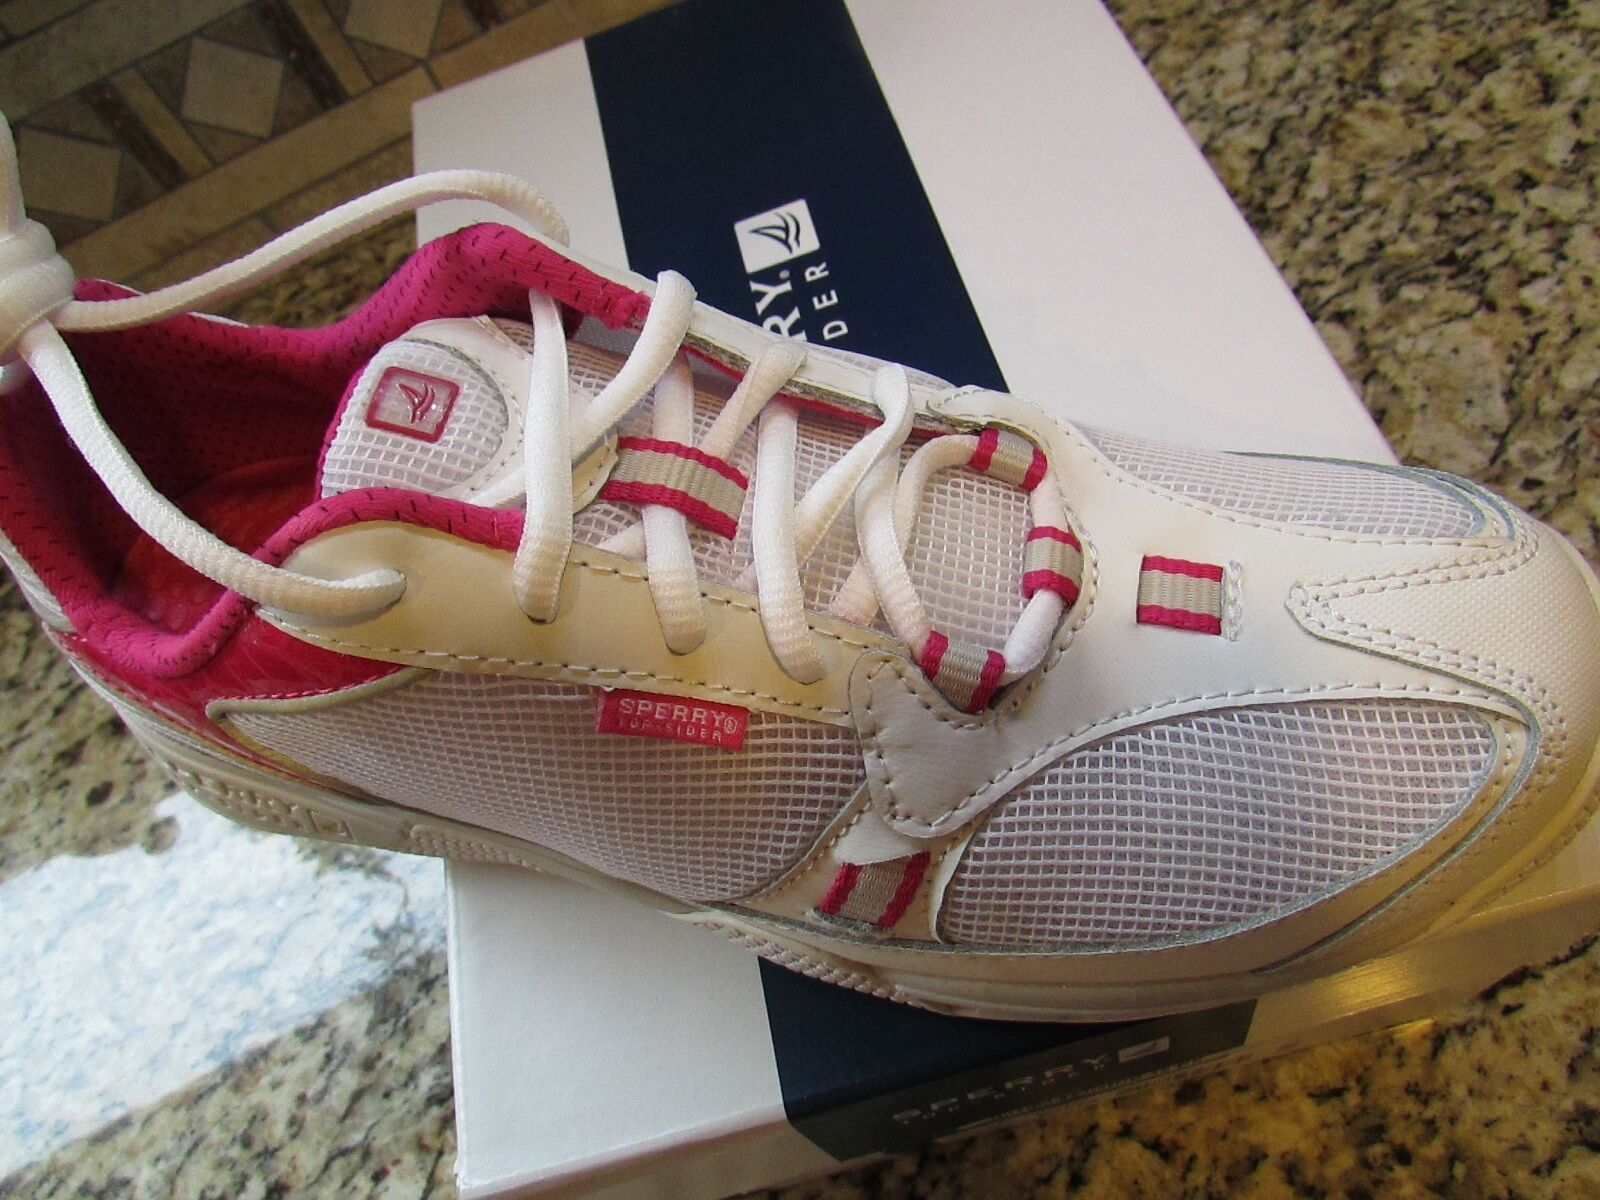 NEUS SPERRY TOP-SIDER SEA KITE ATHLETIC Schuhe Damenschuhe 9 WEISS PINK  FREE SHIP